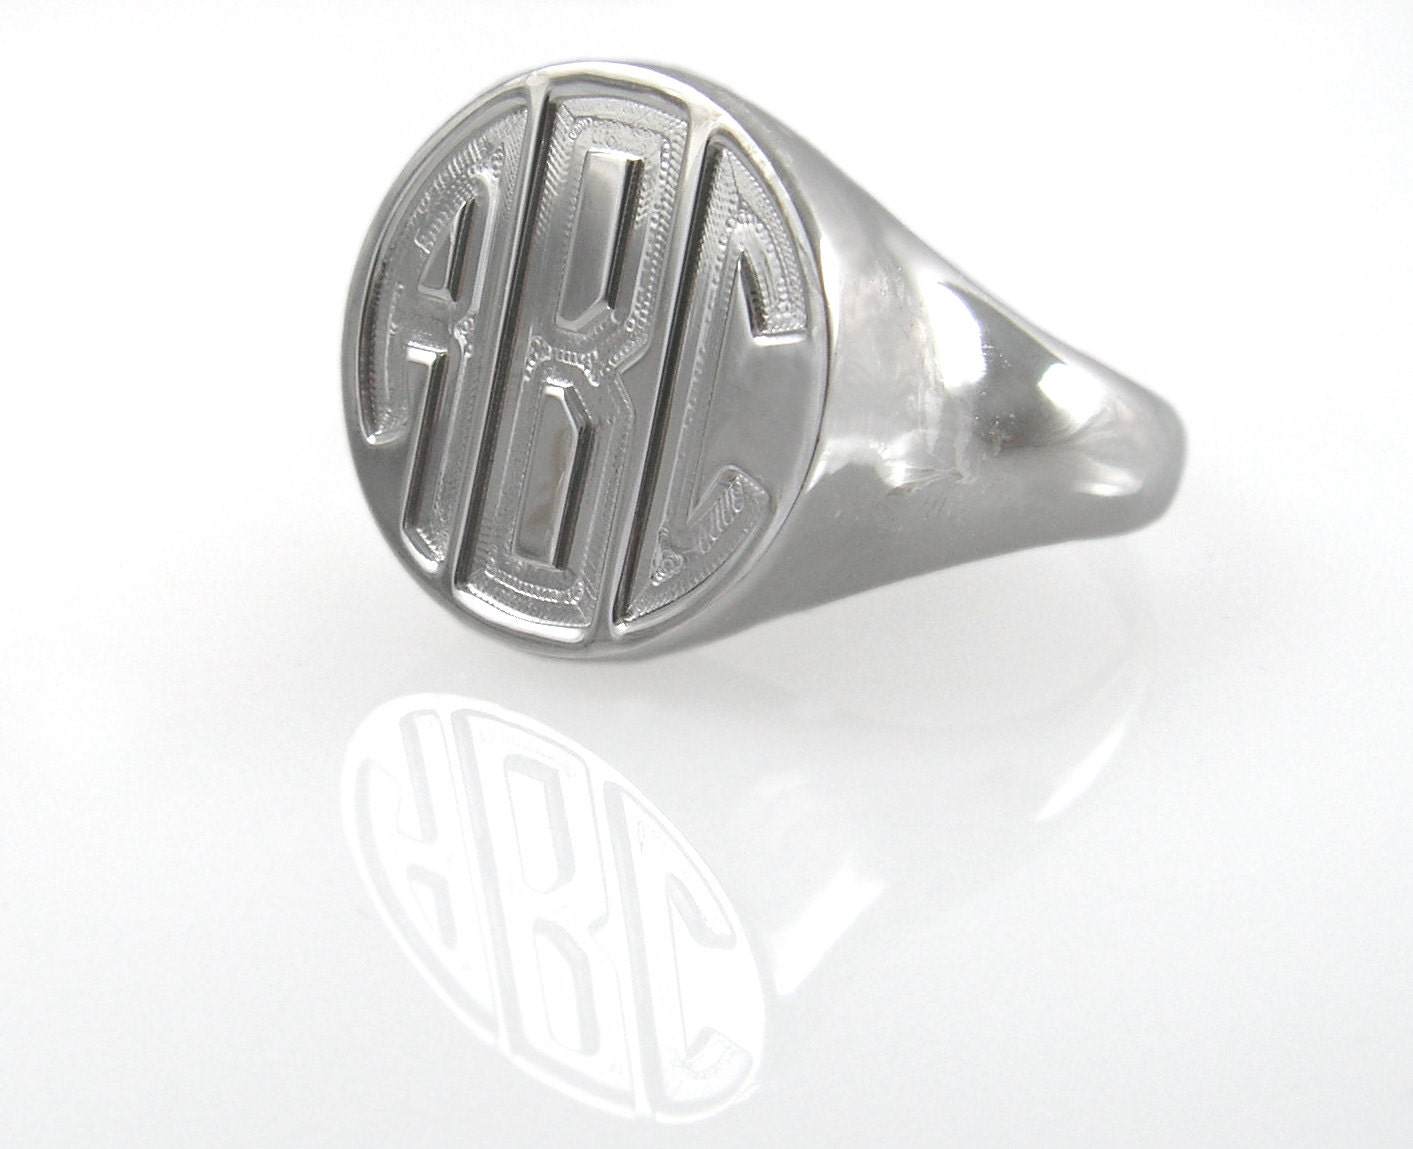 monogram ring sterling silver ring silver monogram ring